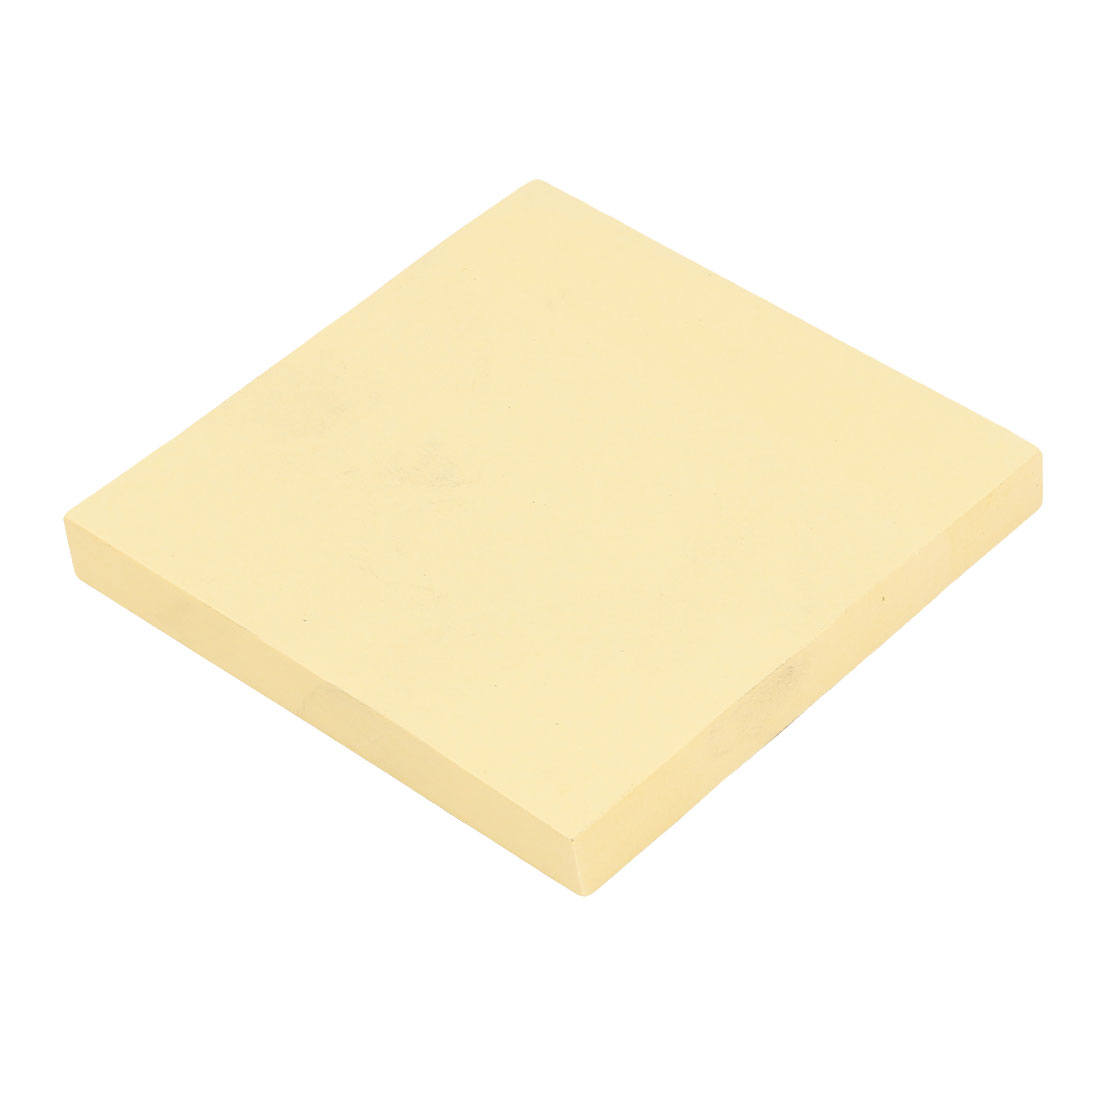 75 x 75mm Self Stick Paper Adhesive Sticky Memo Notes Yellow 100 Sheets